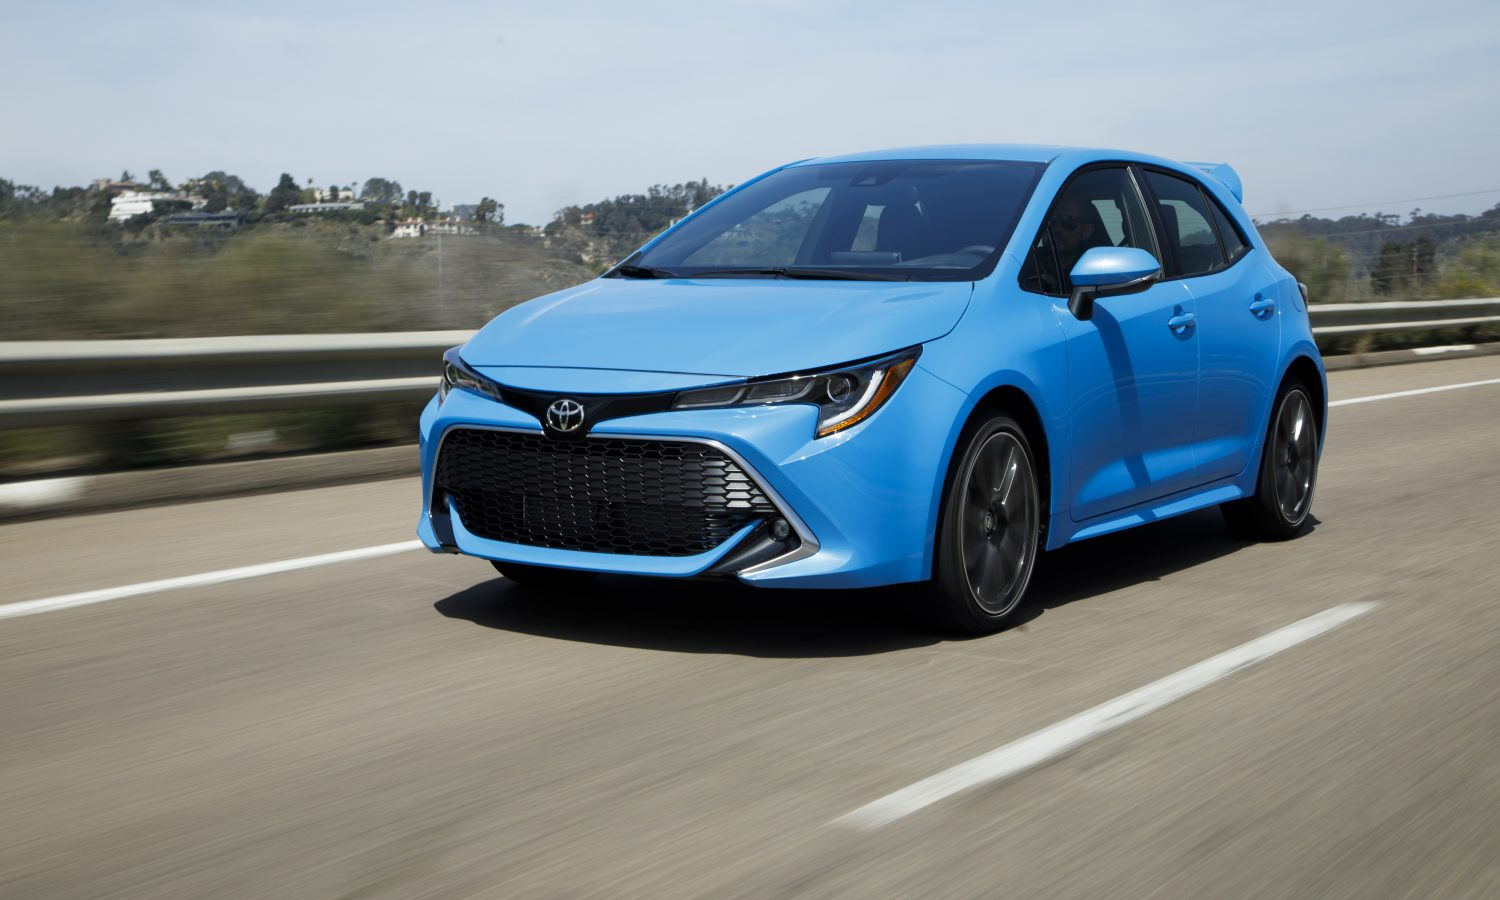 Hatch is Back! All-New 2019 Toyota Corolla Hatchback Wows with Loads of Style, Dynamic Performance, and Technology